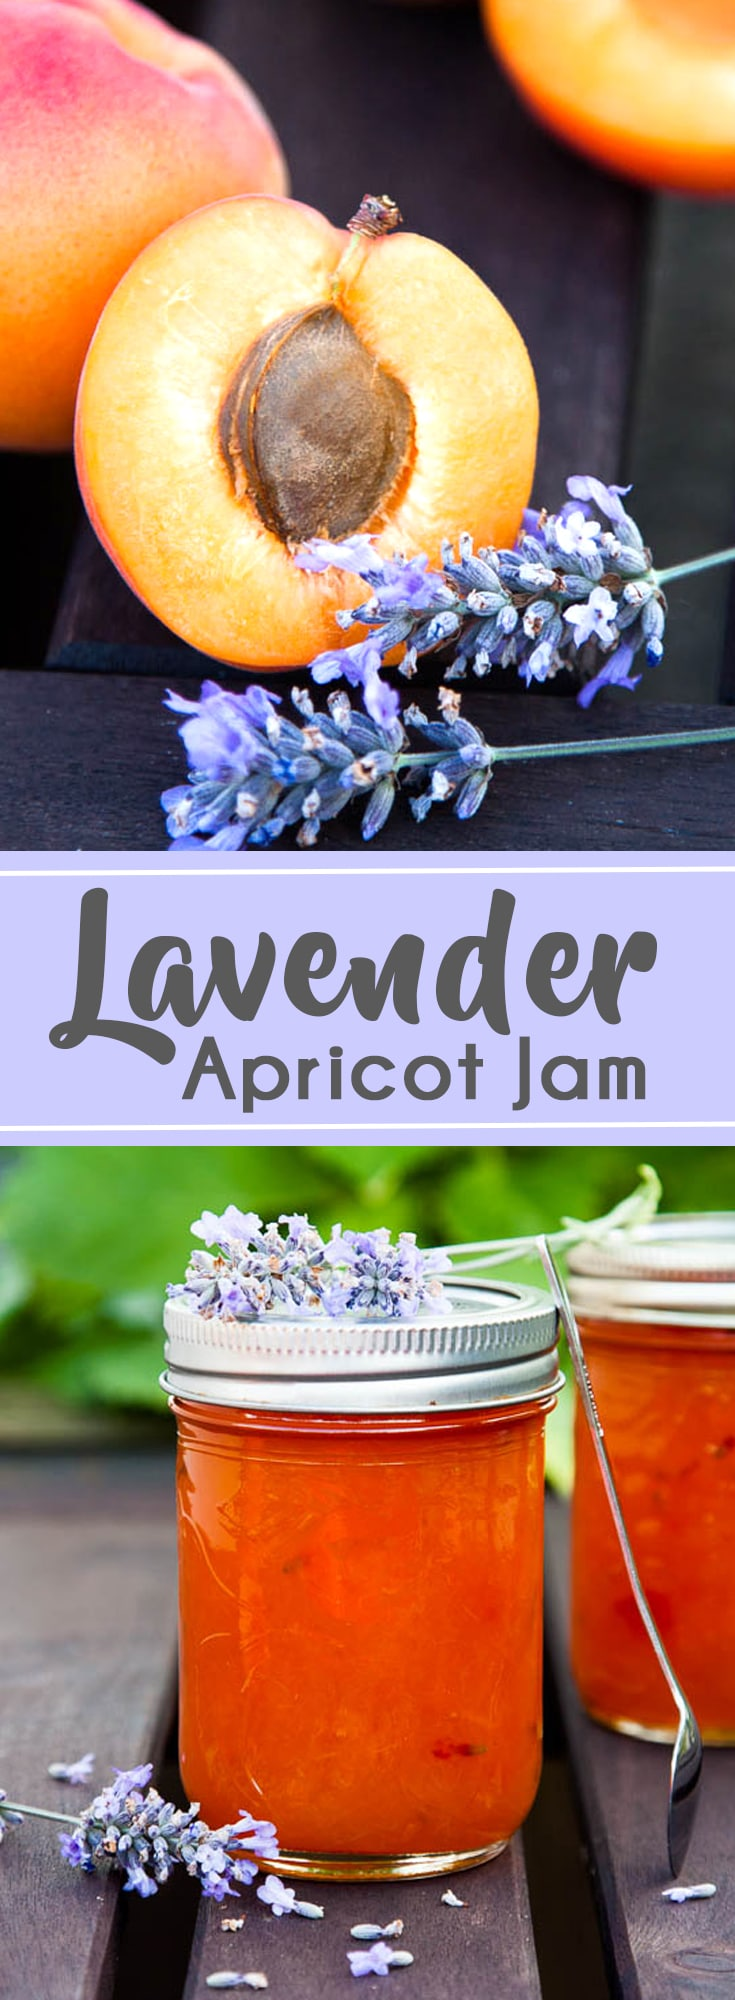 The lavender in this Apricot Lavender Jam adds a subtle floral note - an unexpected and delightful addition. Recipe yields 2 half-pint jars.